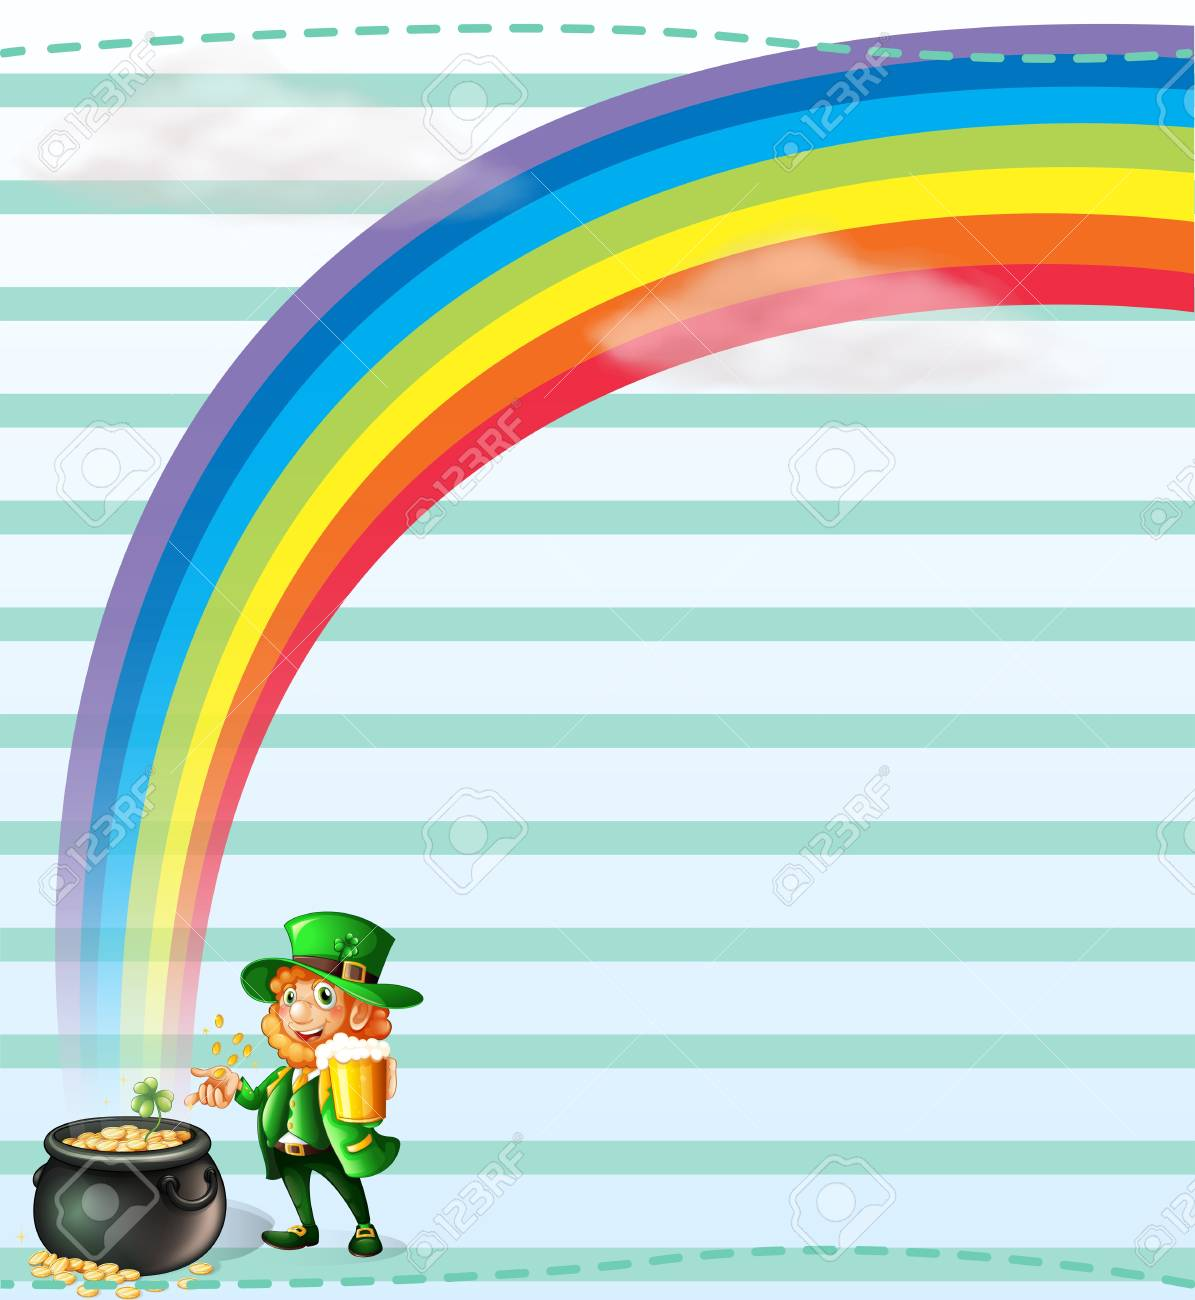 Illustration of a stationery with a rainbow and an old man Stock Vector - 18716950